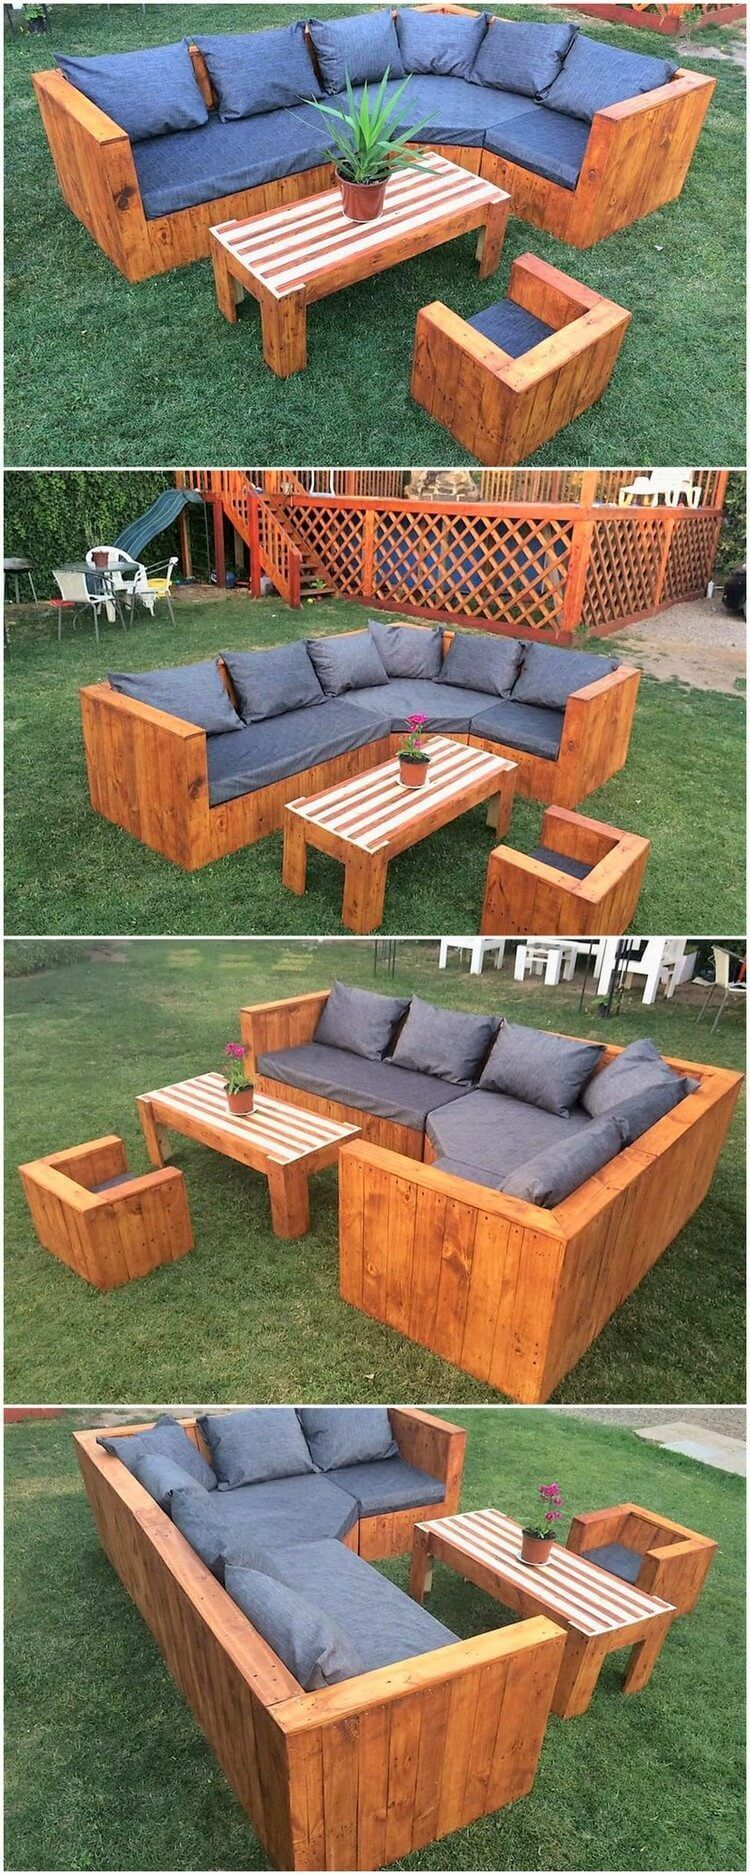 Garden Couch Set Made With Wood Pallets